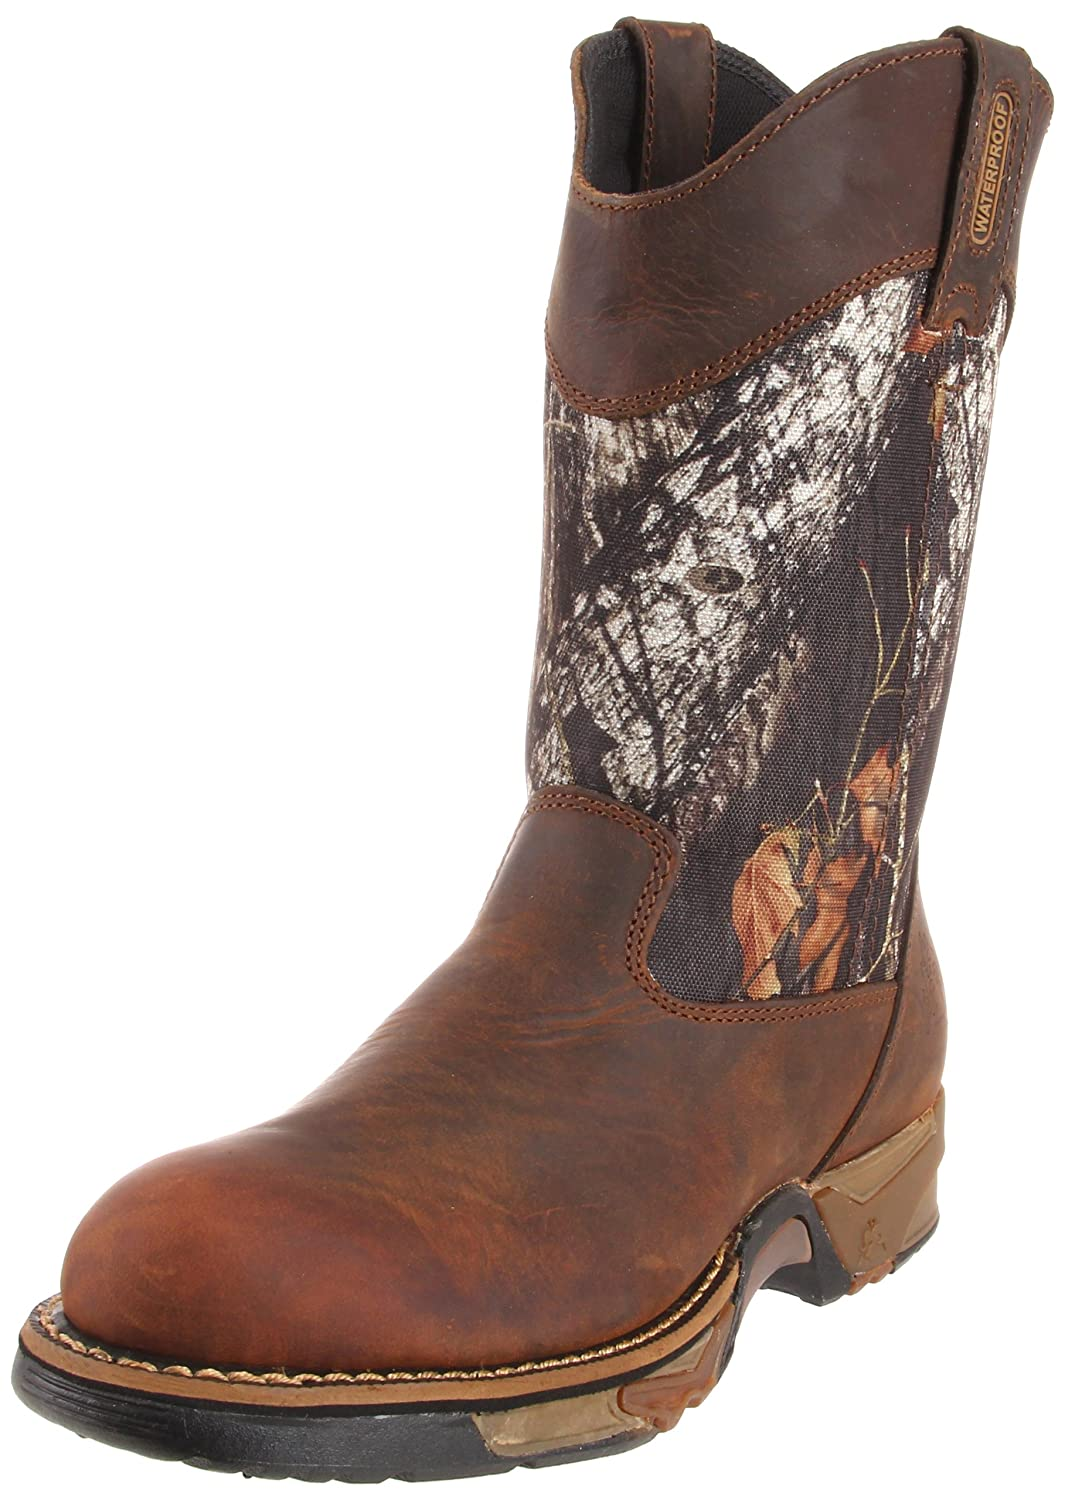 Rocky メンズ B002HXCI4Y 12 D(M) US|Brown/Mossy Oak Breakup Brown/Mossy Oak Breakup 12 D(M) US